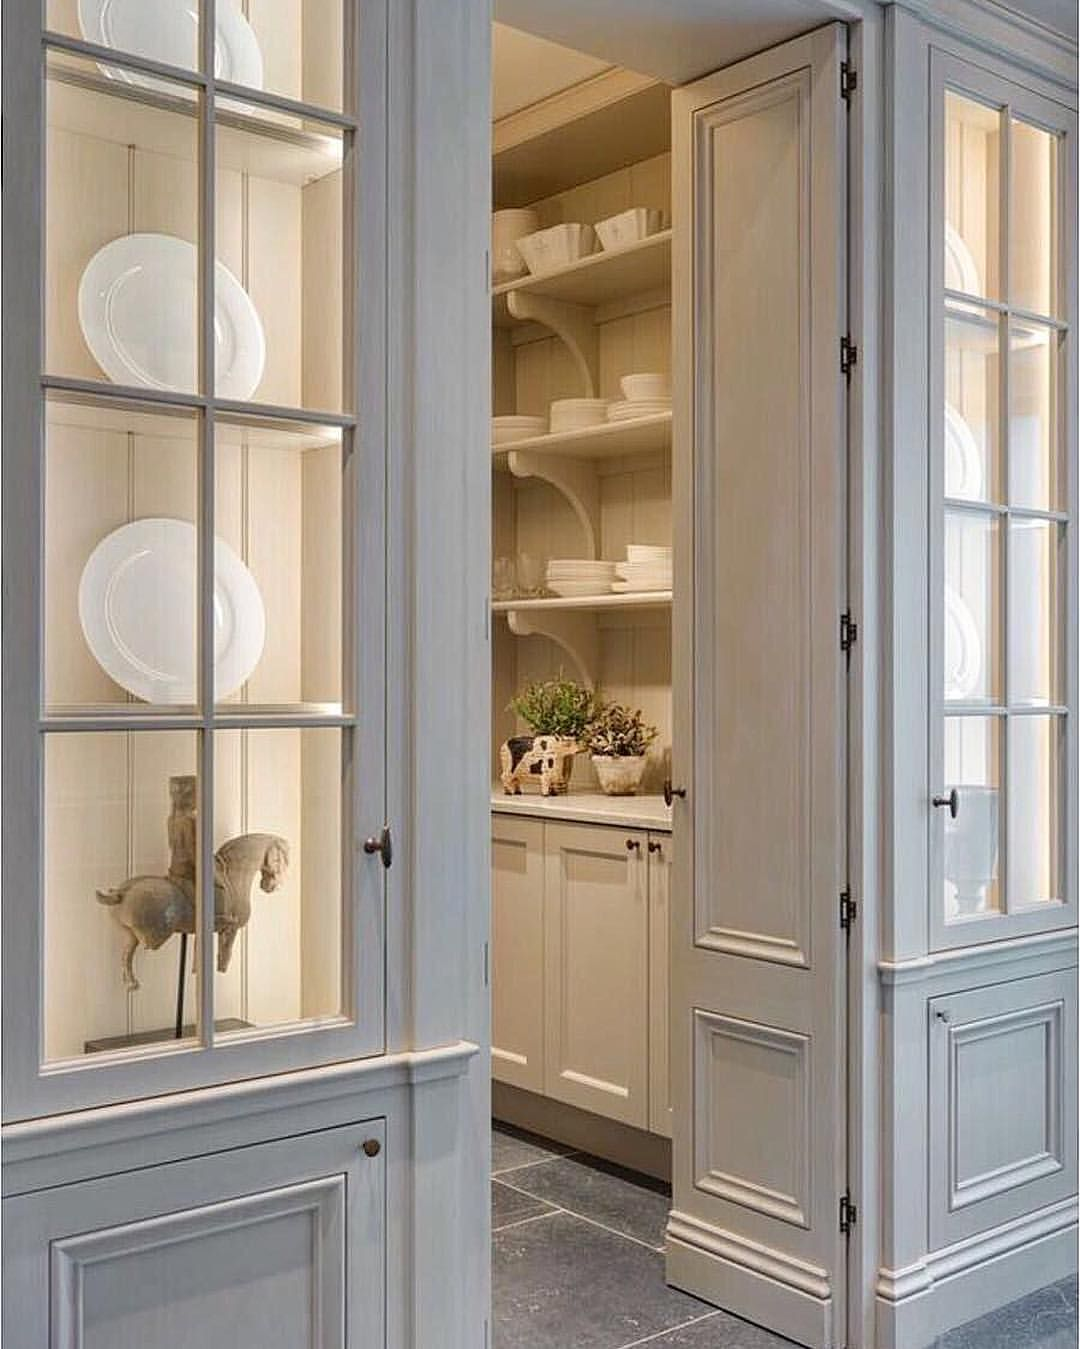 Built In Kitchen Cupboards Designs: 21 Dining Room Built-In Cabinets And Storage Design